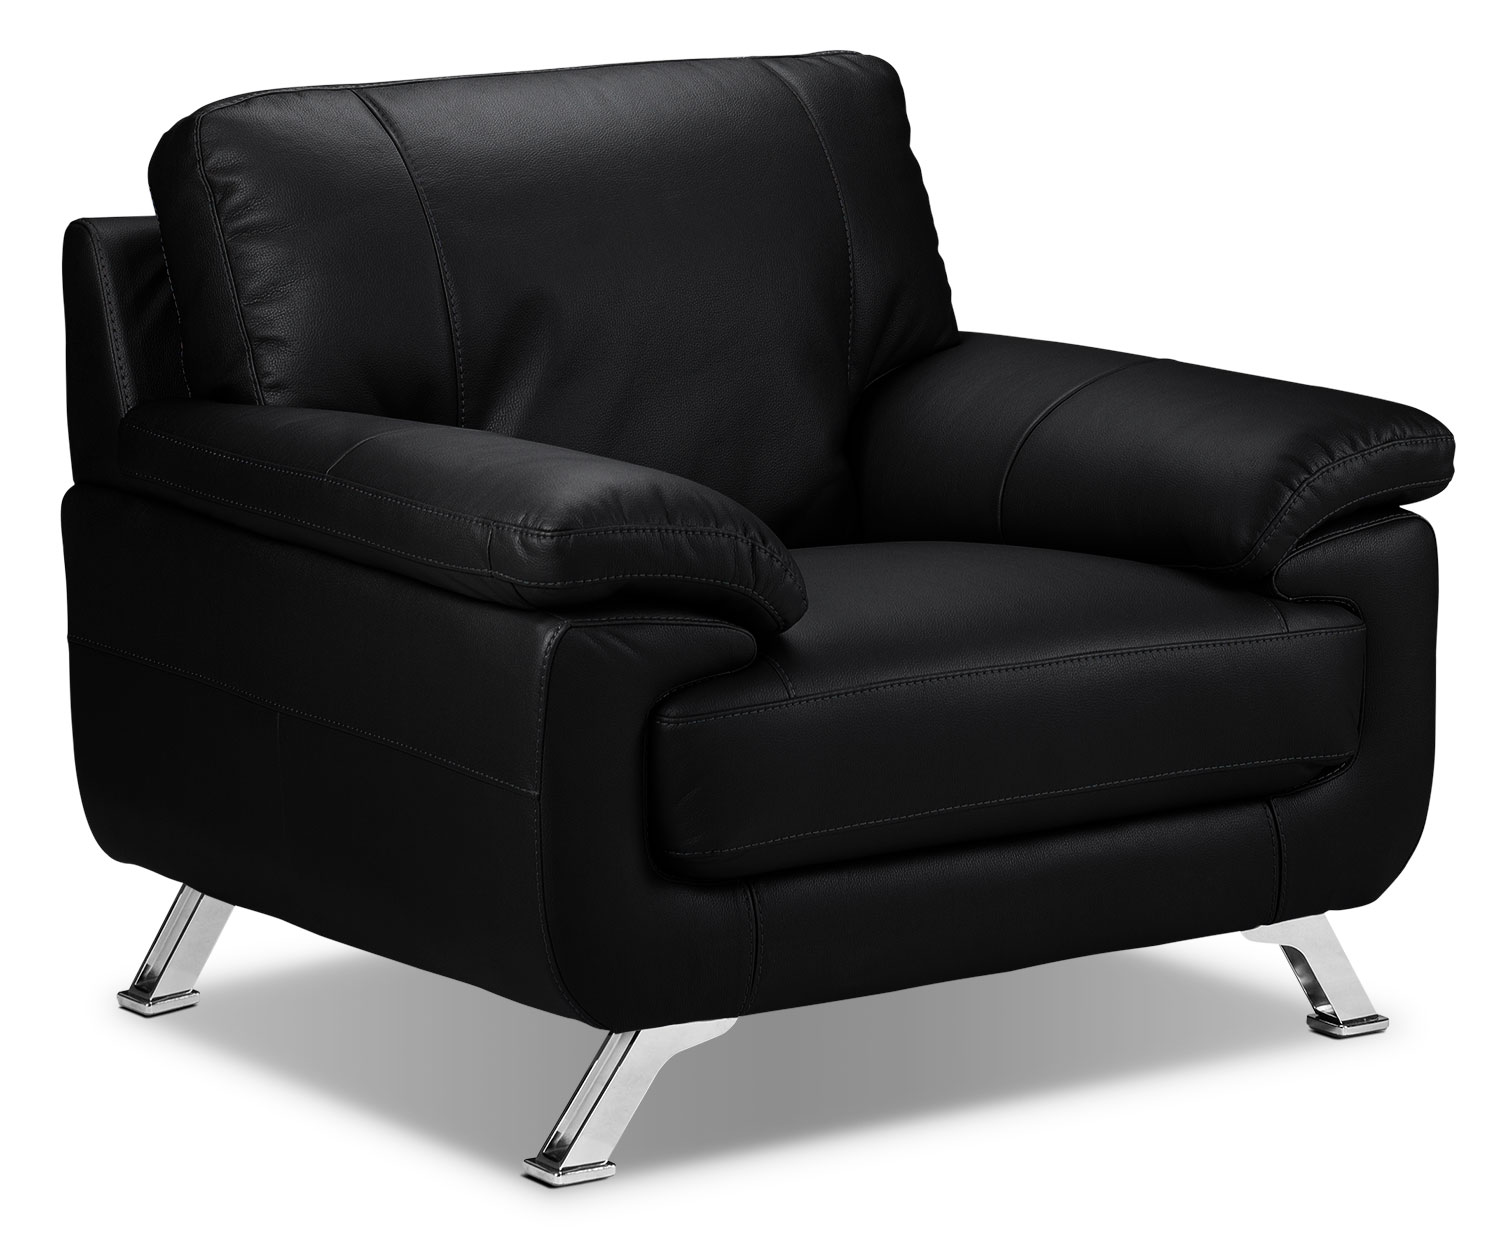 Living Room Furniture - Infinity Chair - Black